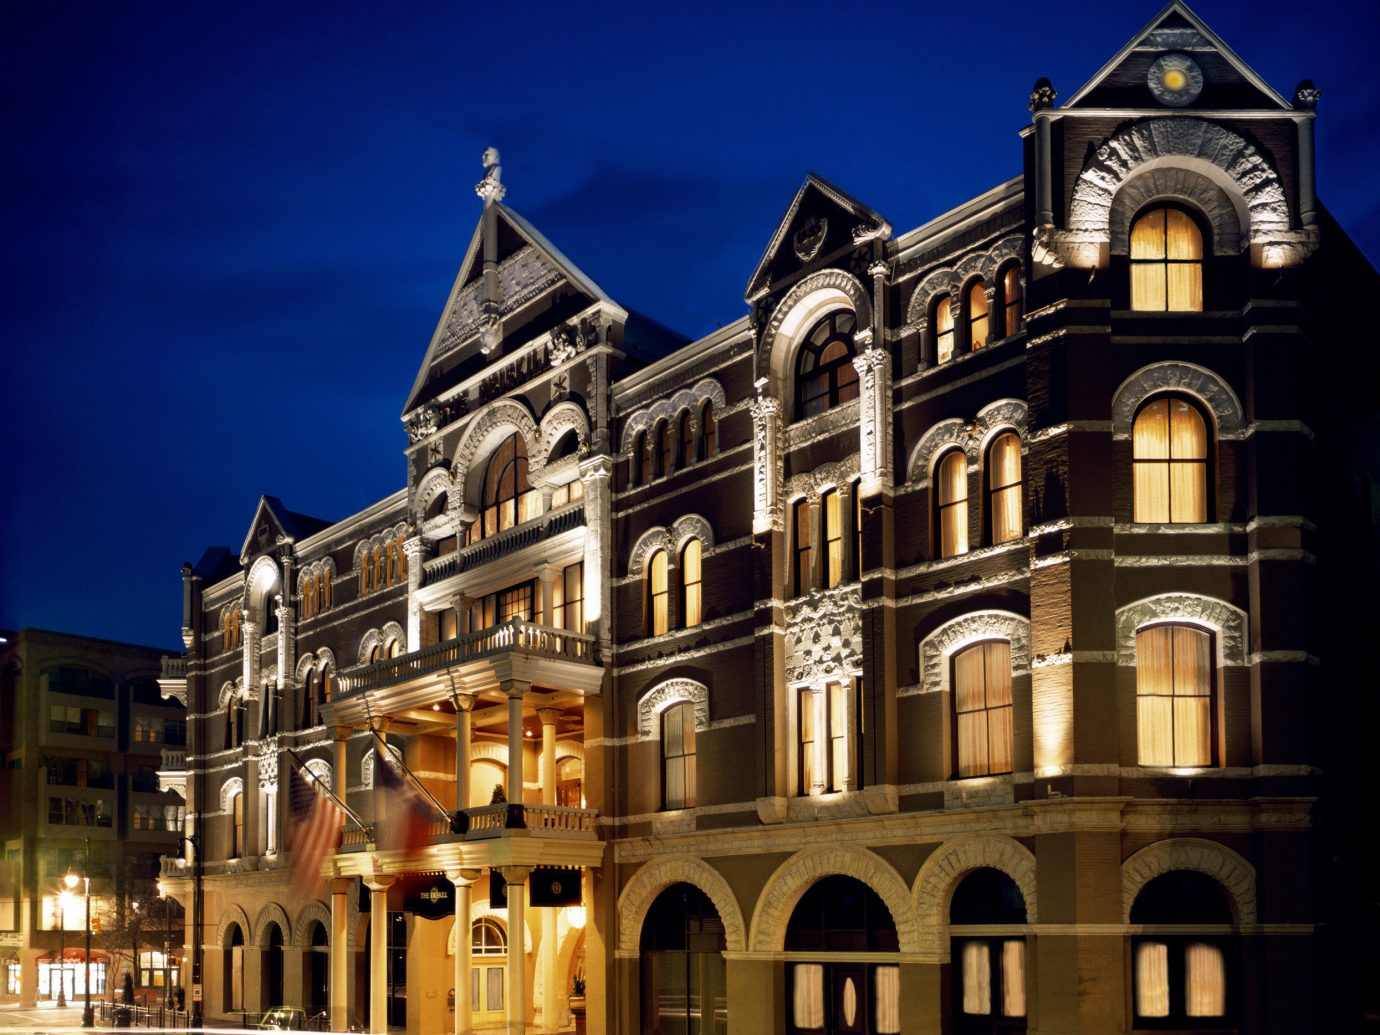 Hotels building outdoor landmark Town night house Architecture facade evening estate palace cityscape château old stone